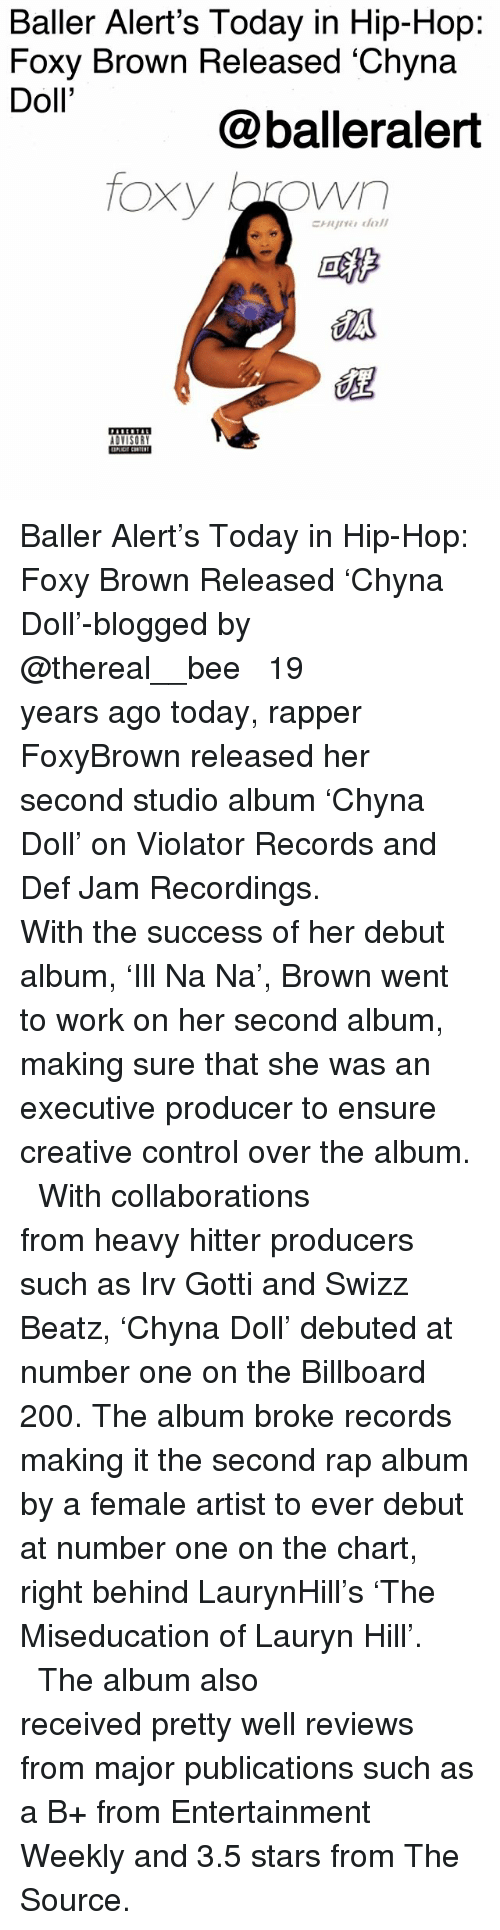 debuted: Baller Alert's Today in Hip-Hop:  Foxy Brown Released 'Chyna  Doll'  @balleralert  foxy brown  葩  EEETAE Baller Alert's Today in Hip-Hop: Foxy Brown Released 'Chyna Doll'-blogged by @thereal__bee ⠀⠀⠀⠀⠀⠀⠀ ⠀⠀⠀⠀ 19 years ago today, rapper FoxyBrown released her second studio album 'Chyna Doll' on Violator Records and Def Jam Recordings. ⠀⠀⠀⠀⠀⠀⠀ ⠀⠀⠀⠀ With the success of her debut album, 'Ill Na Na', Brown went to work on her second album, making sure that she was an executive producer to ensure creative control over the album. ⠀⠀⠀⠀⠀⠀⠀ ⠀⠀⠀⠀ With collaborations from heavy hitter producers such as Irv Gotti and Swizz Beatz, 'Chyna Doll' debuted at number one on the Billboard 200. The album broke records making it the second rap album by a female artist to ever debut at number one on the chart, right behind LaurynHill's 'The Miseducation of Lauryn Hill'. ⠀⠀⠀⠀⠀⠀⠀ ⠀⠀⠀⠀ The album also received pretty well reviews from major publications such as a B+ from Entertainment Weekly and 3.5 stars from The Source.